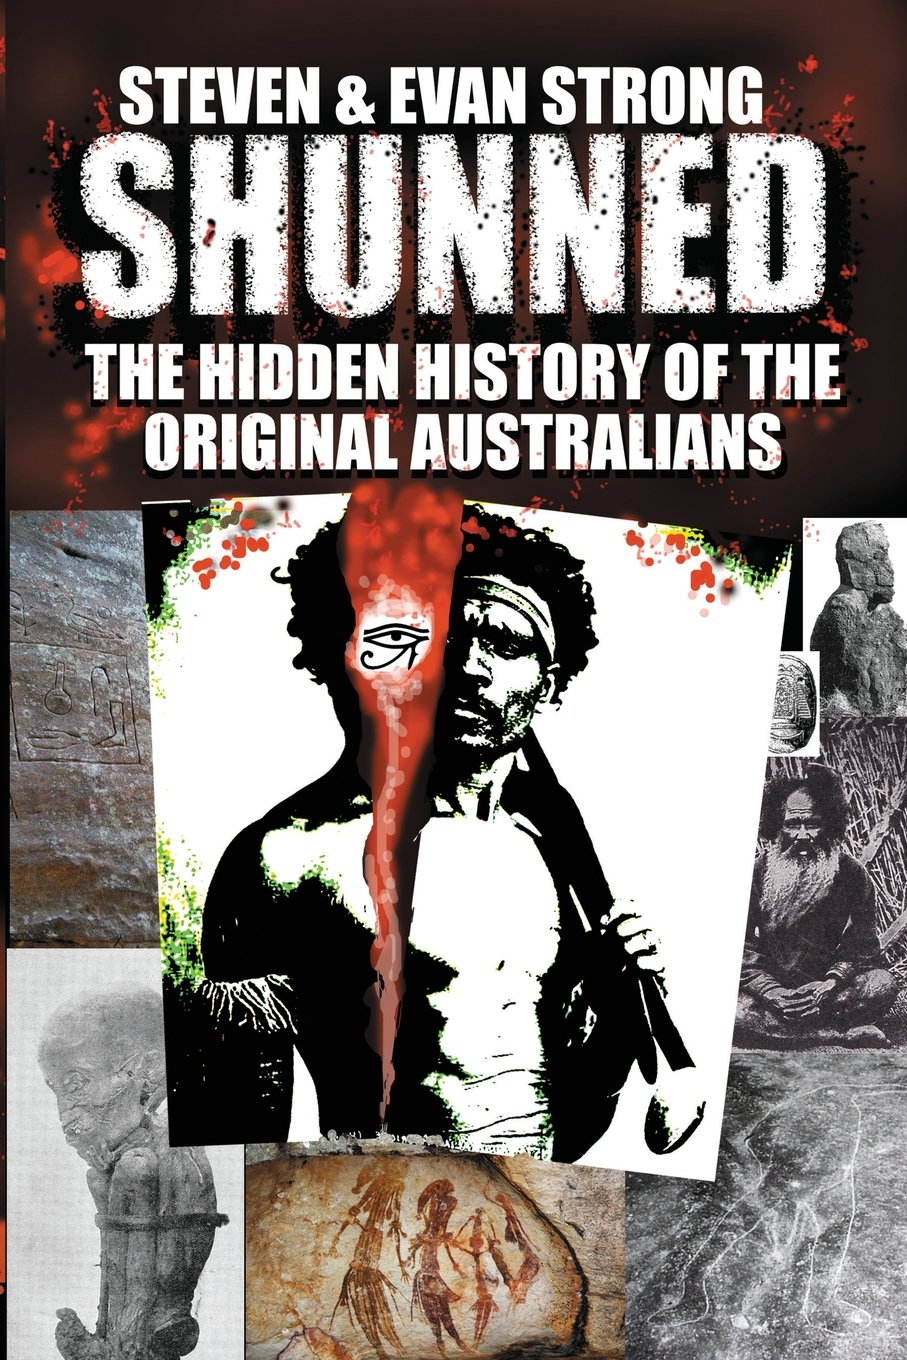 Shunned: The Hidden History of the Original Australians by Steven & Evan Strong